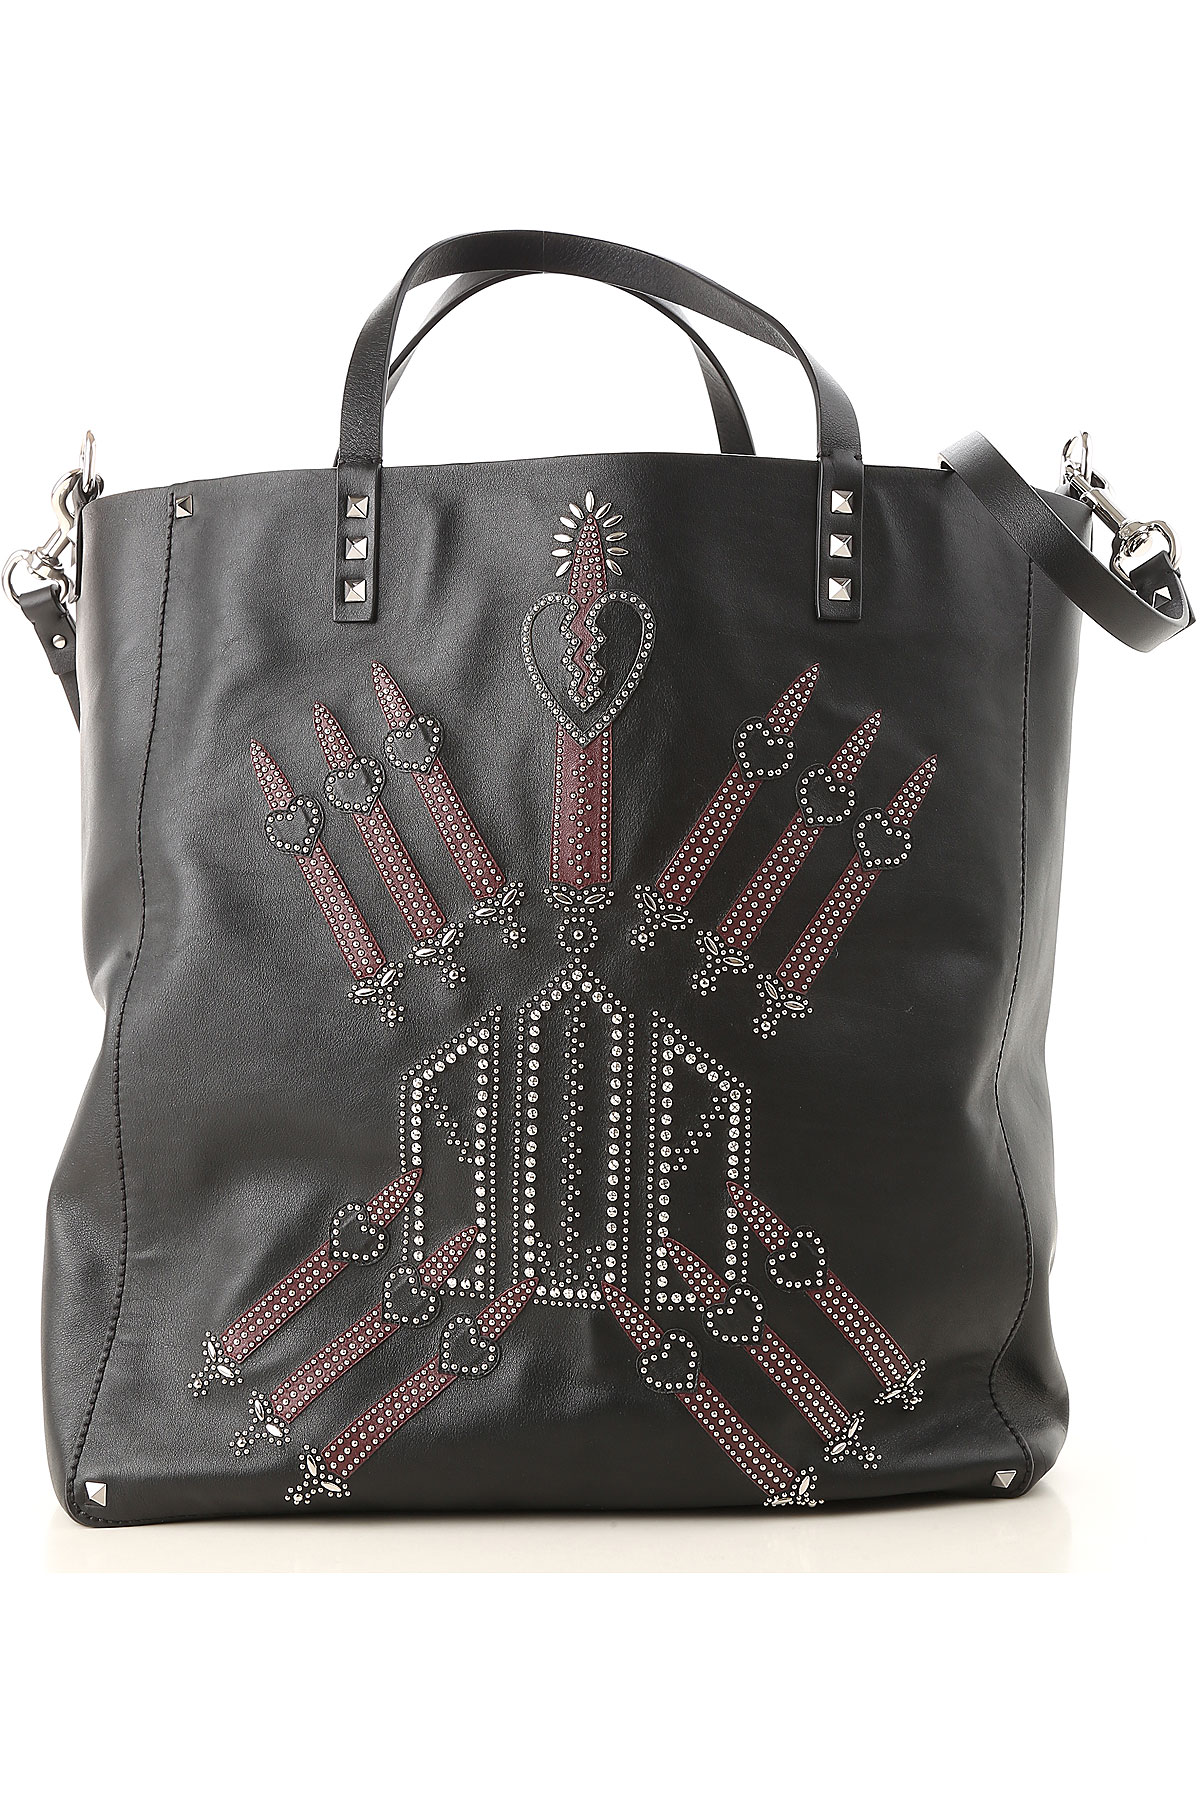 Image of Valentino Totes On Sale in Outlet, Rockstud Love Blade, Black, Leather, 2017